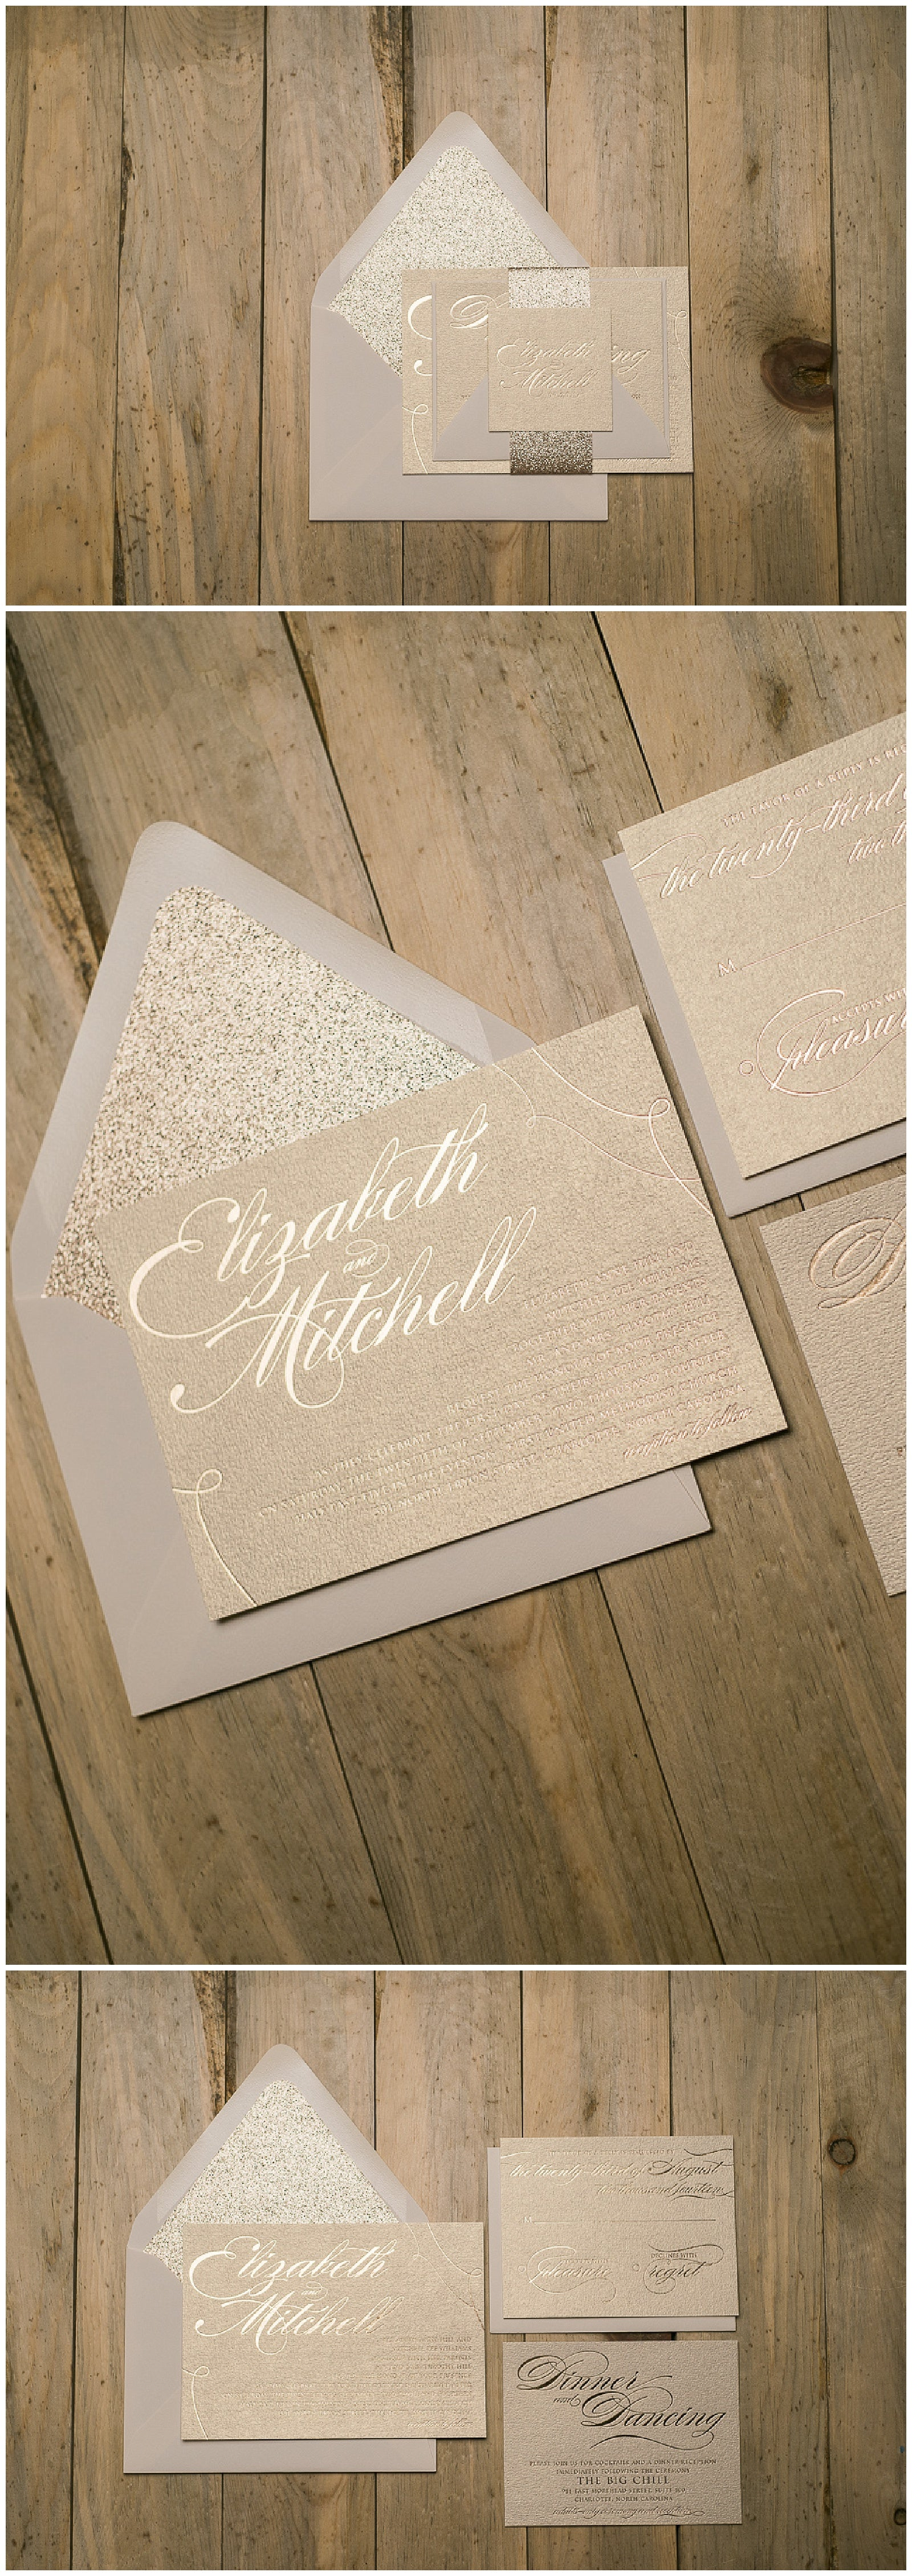 Rose Gold Foil Wedding Invitations, Neutral Wedding Colors, Glitter Wedding Stationery, Lauren Suite, Just Invite Me